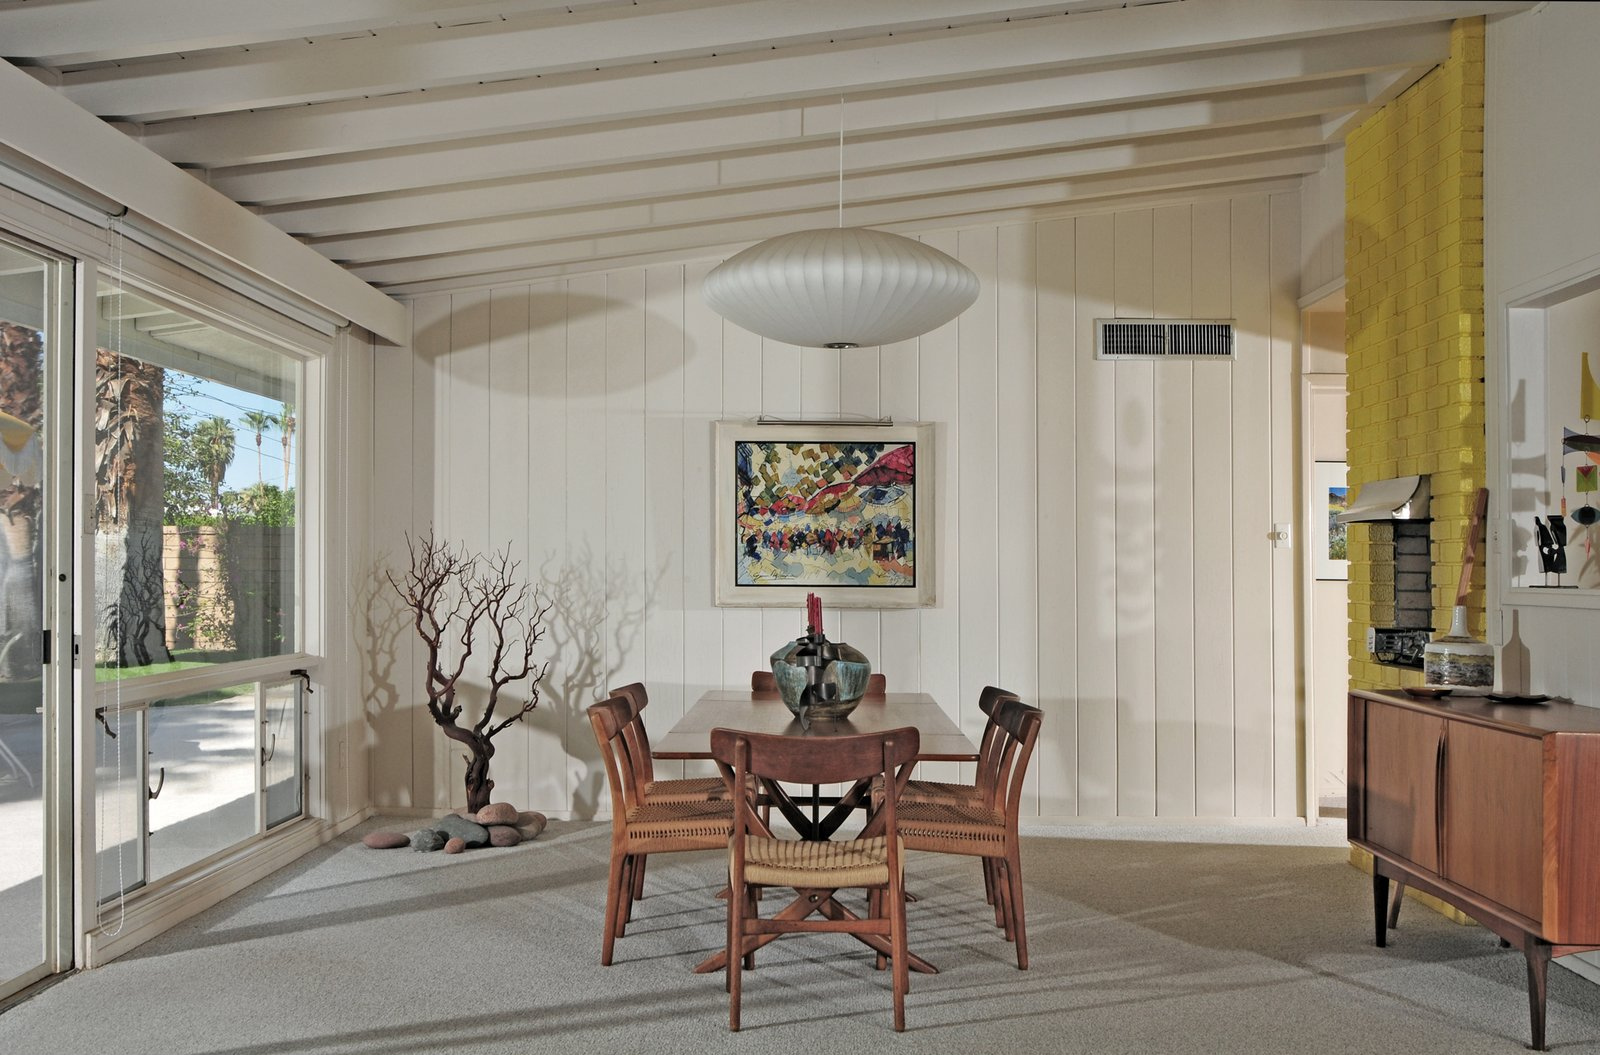 The 1956 LeBaron-Moruzzi Residence by Sam Pascal features all-white interiors with vibrant yellow accents, as seen with the chimney at right. Tagged: Dining Room, Chair, and Table.  Midcentury Homes by Dwell from A New Book Documents the Rarely-Seen Midcentury Modern Gems of Palm Springs